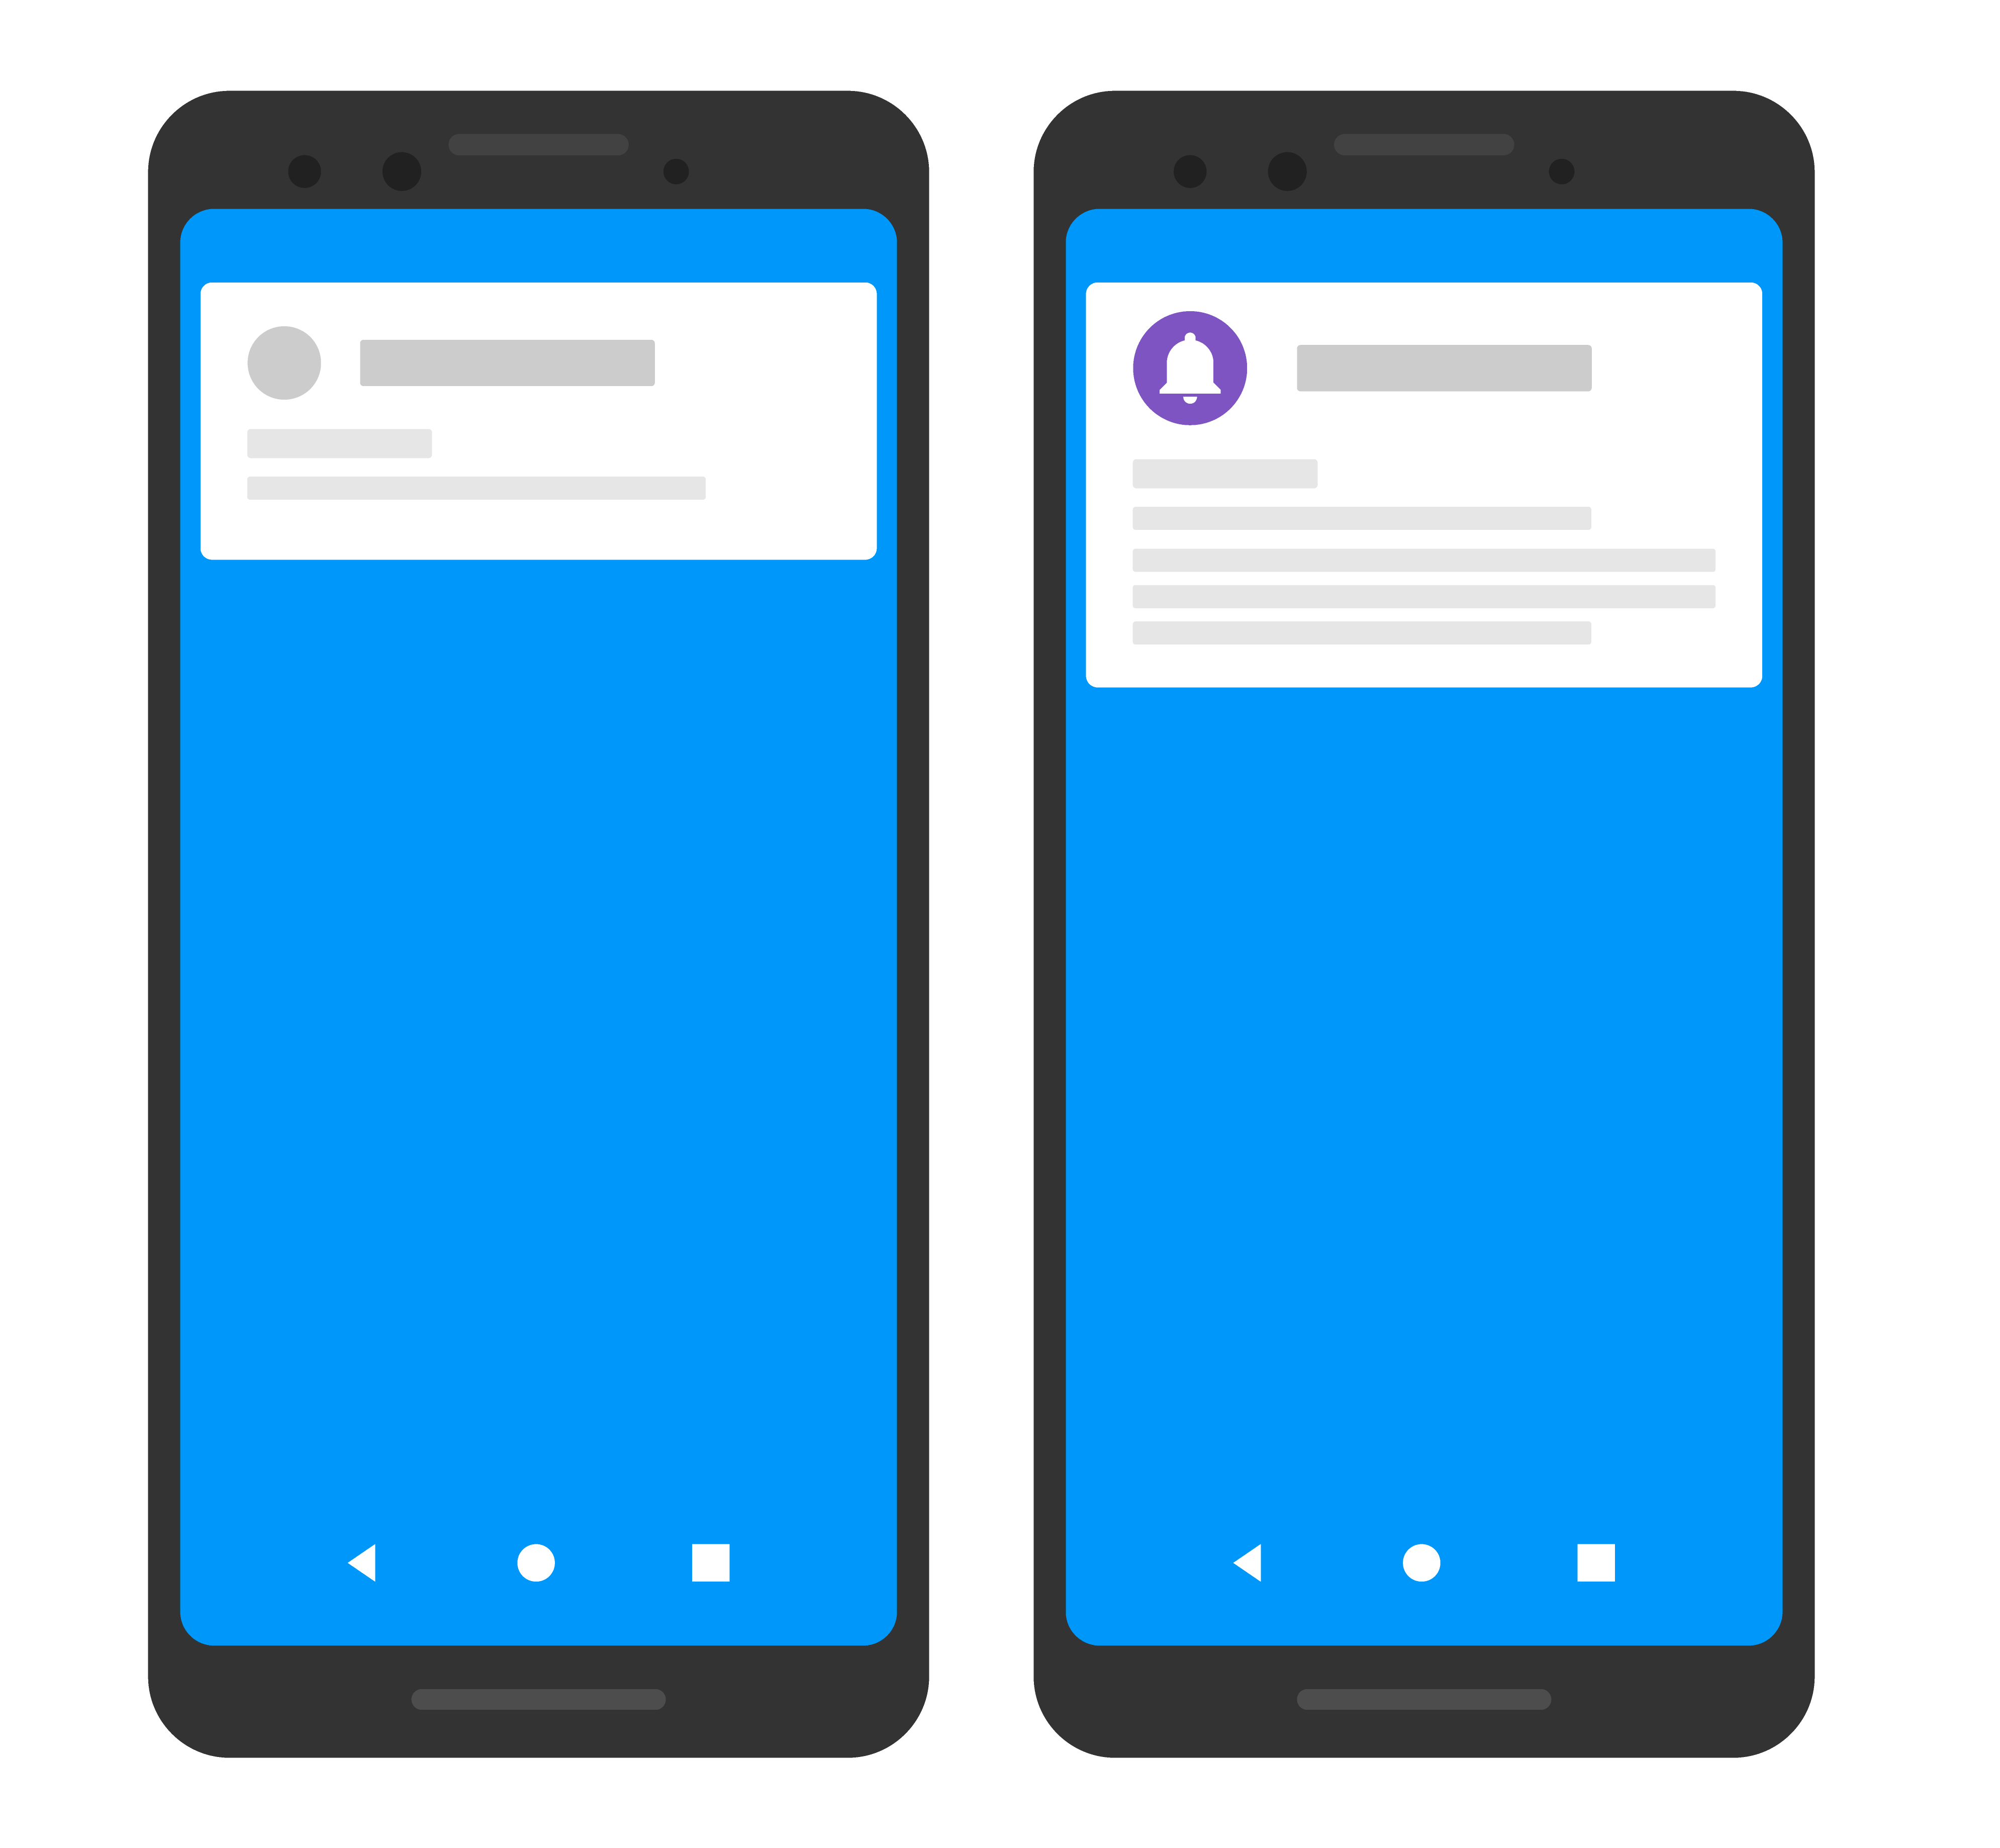 Simple drawing of two devices, with one displaying a custom icon and color